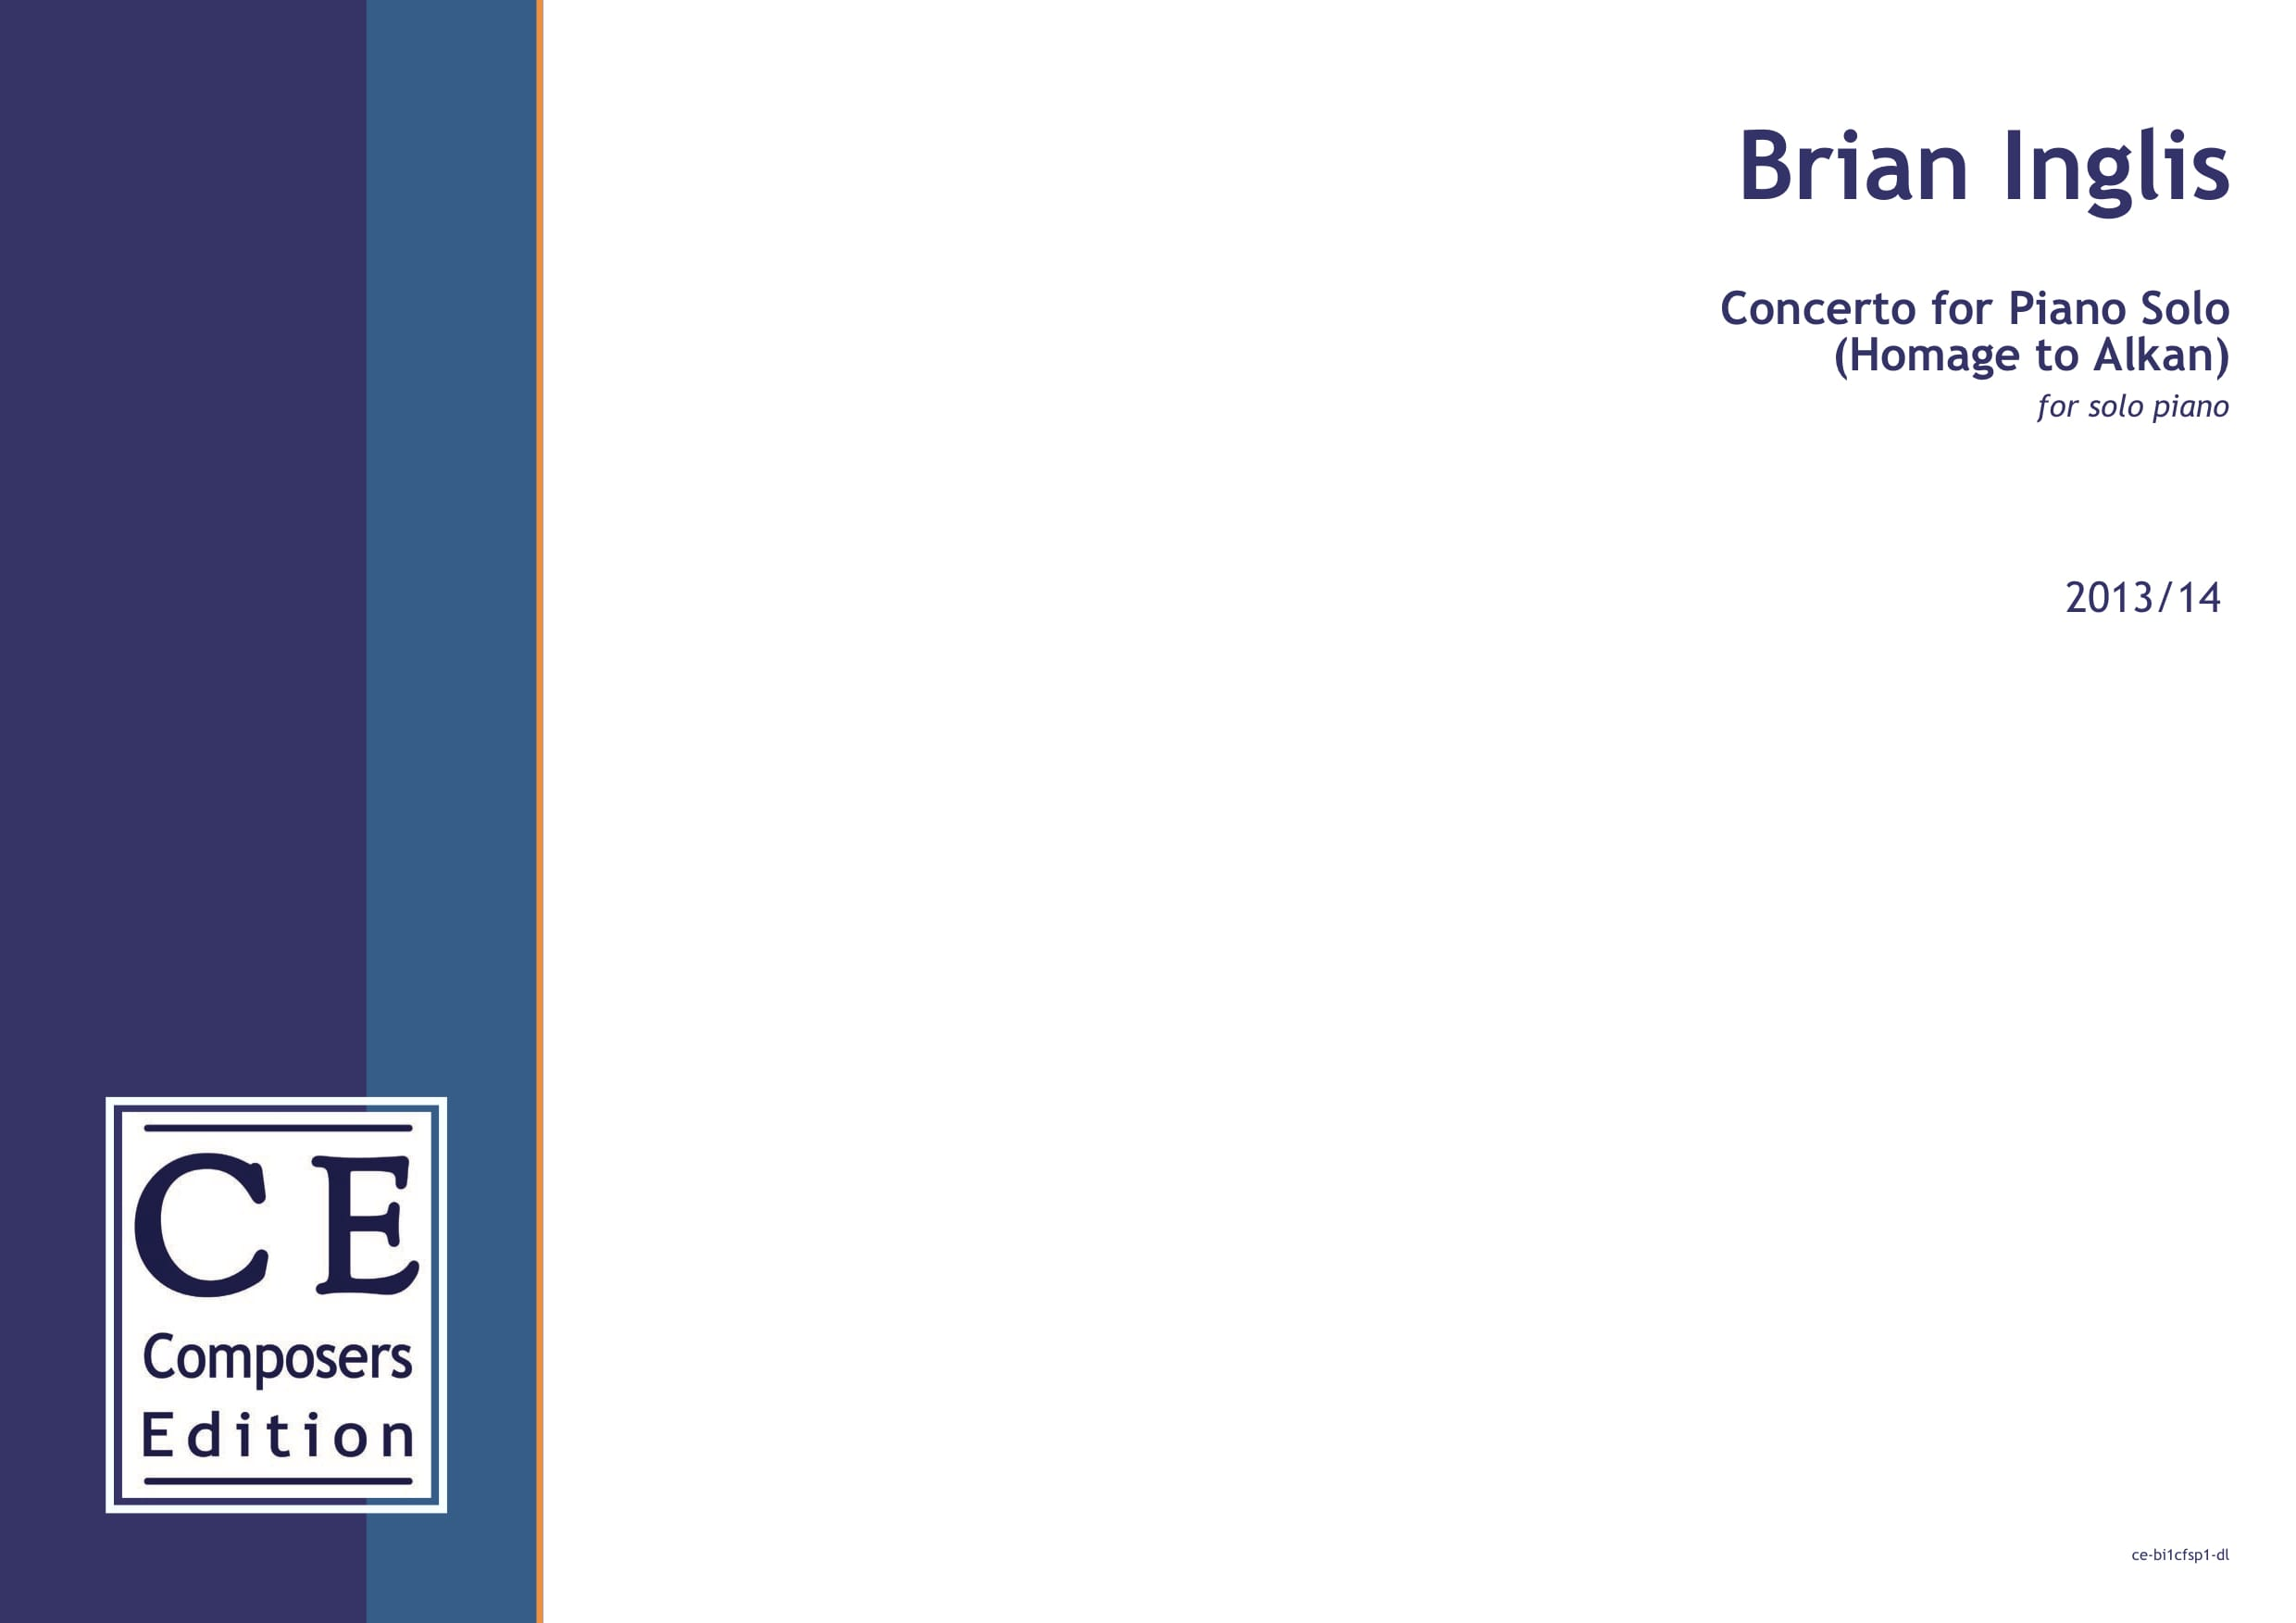 Brian Inglis: Concerto for Piano Solo (Homage to Alkan) for solo piano